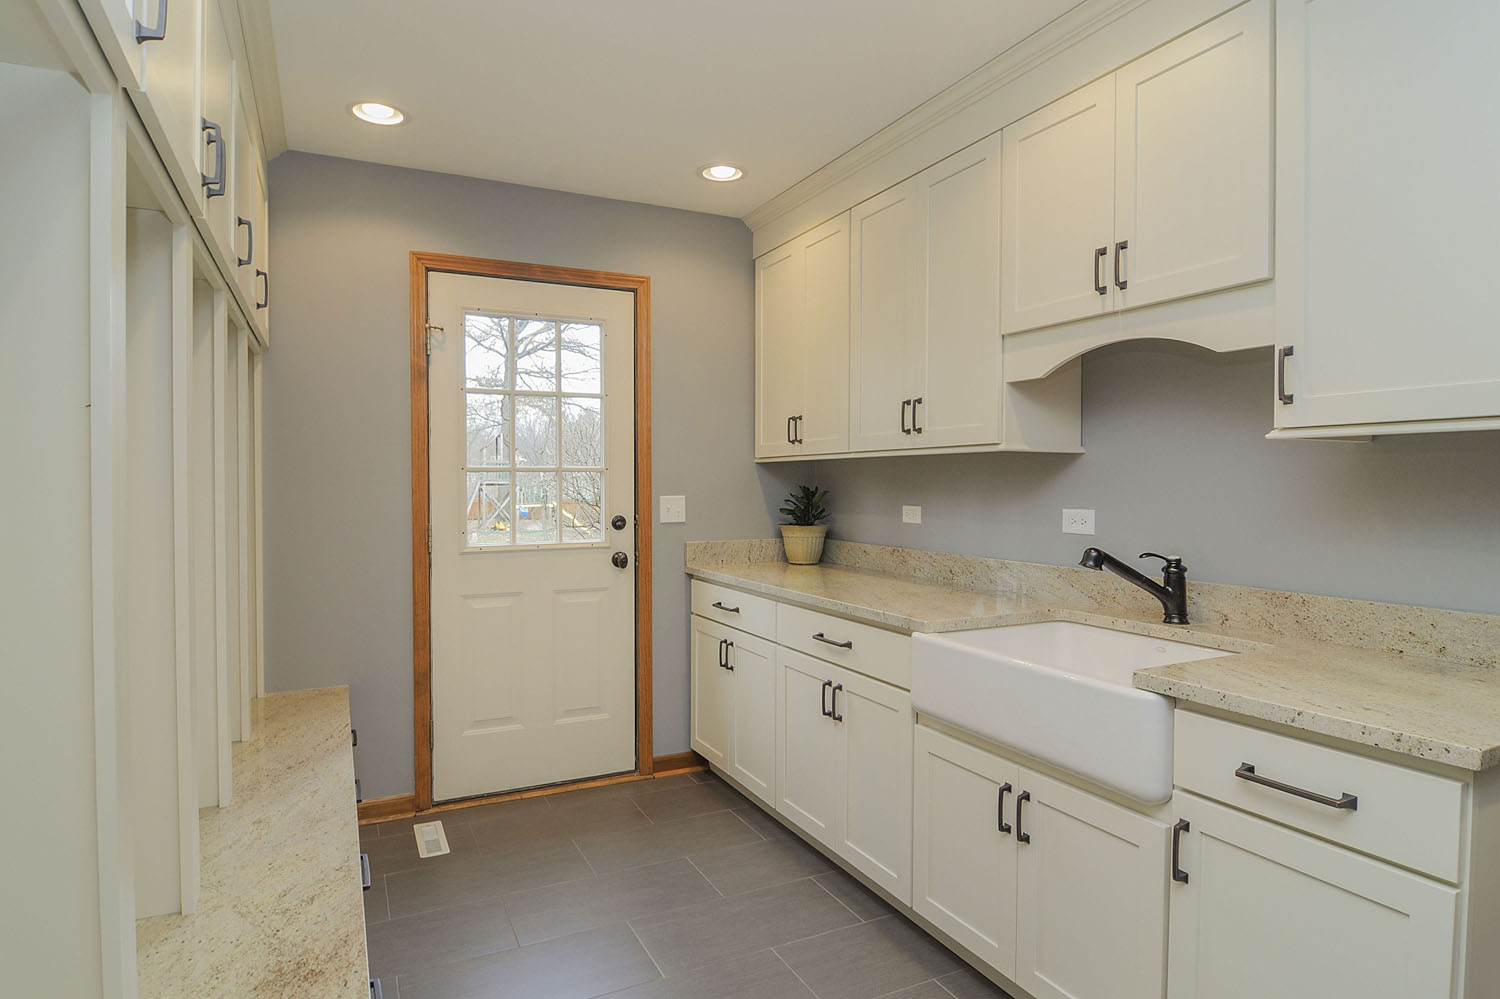 mud room Remodeling Ideas Locker Cabinetry Naperville IL Illinois Sebring Services